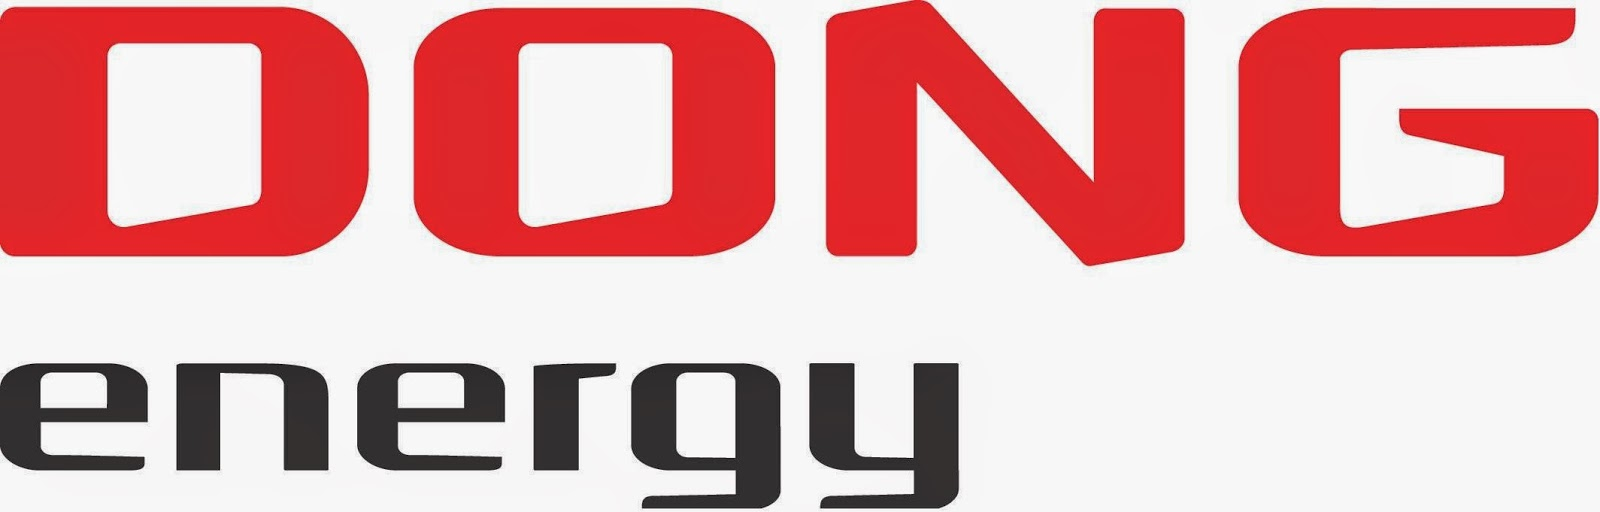 DONG Energy Vacancy: Senior Strategy Consultant for developing and executing ambitious biomass-to-energy strategy - Denmark